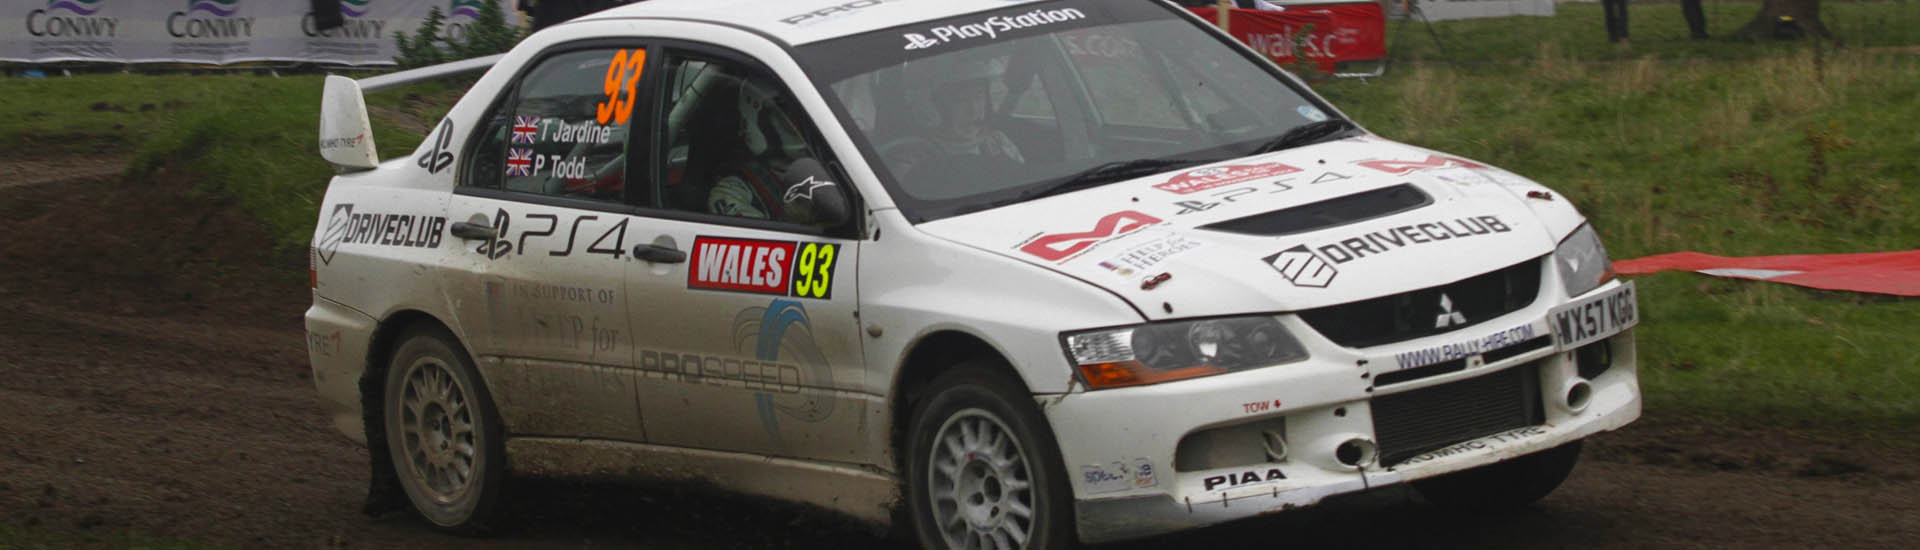 prospeed wales rally gb